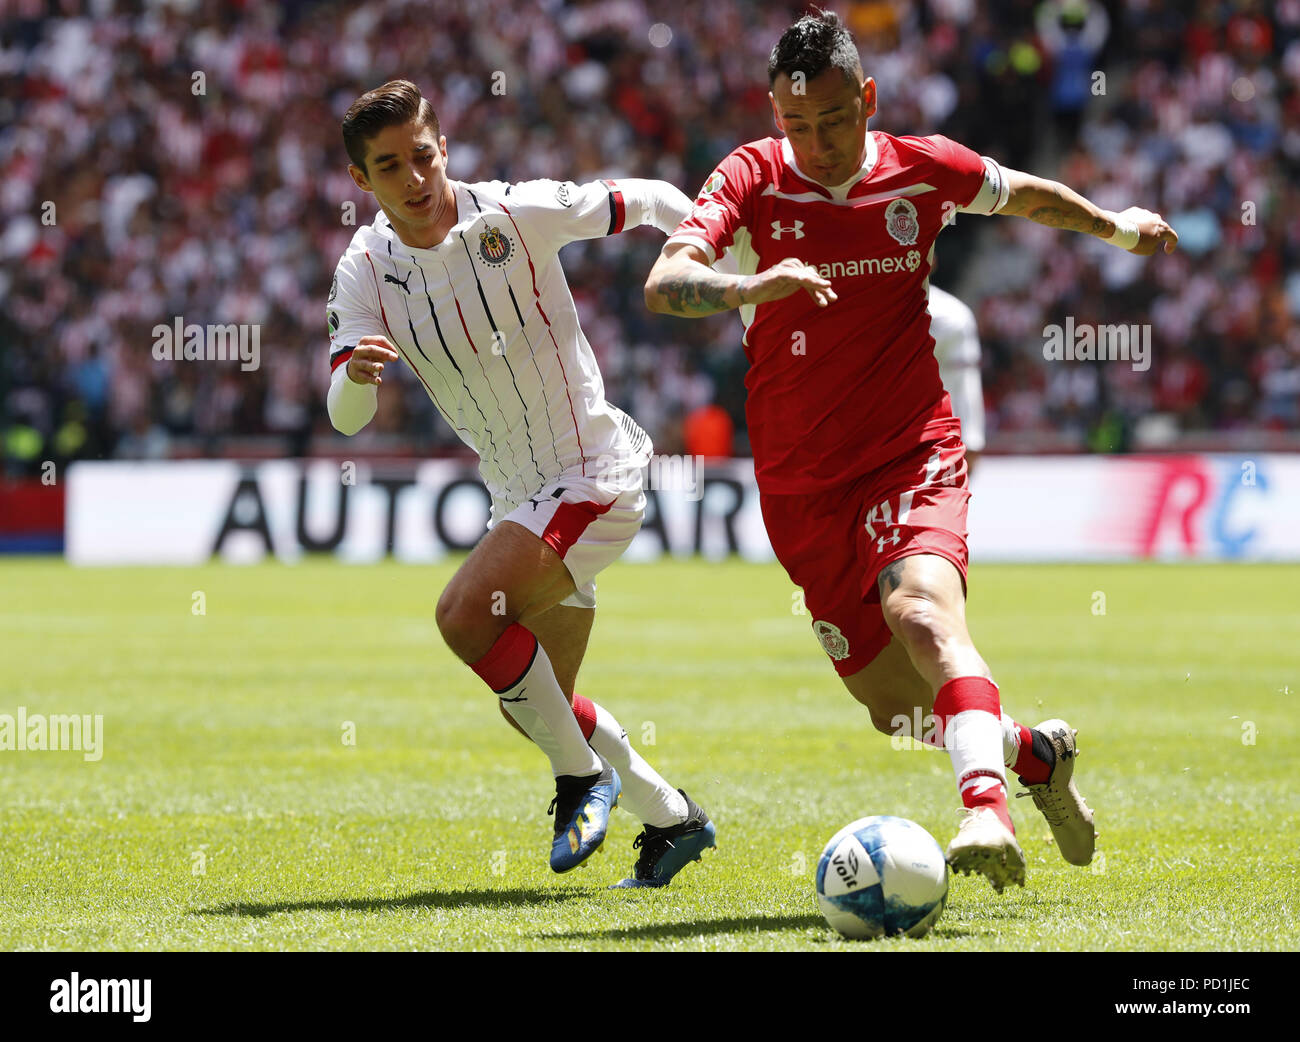 00f40166b70 The player Osvaldo González (R) of Toluca vies for the ball against Isaac  Brizuela